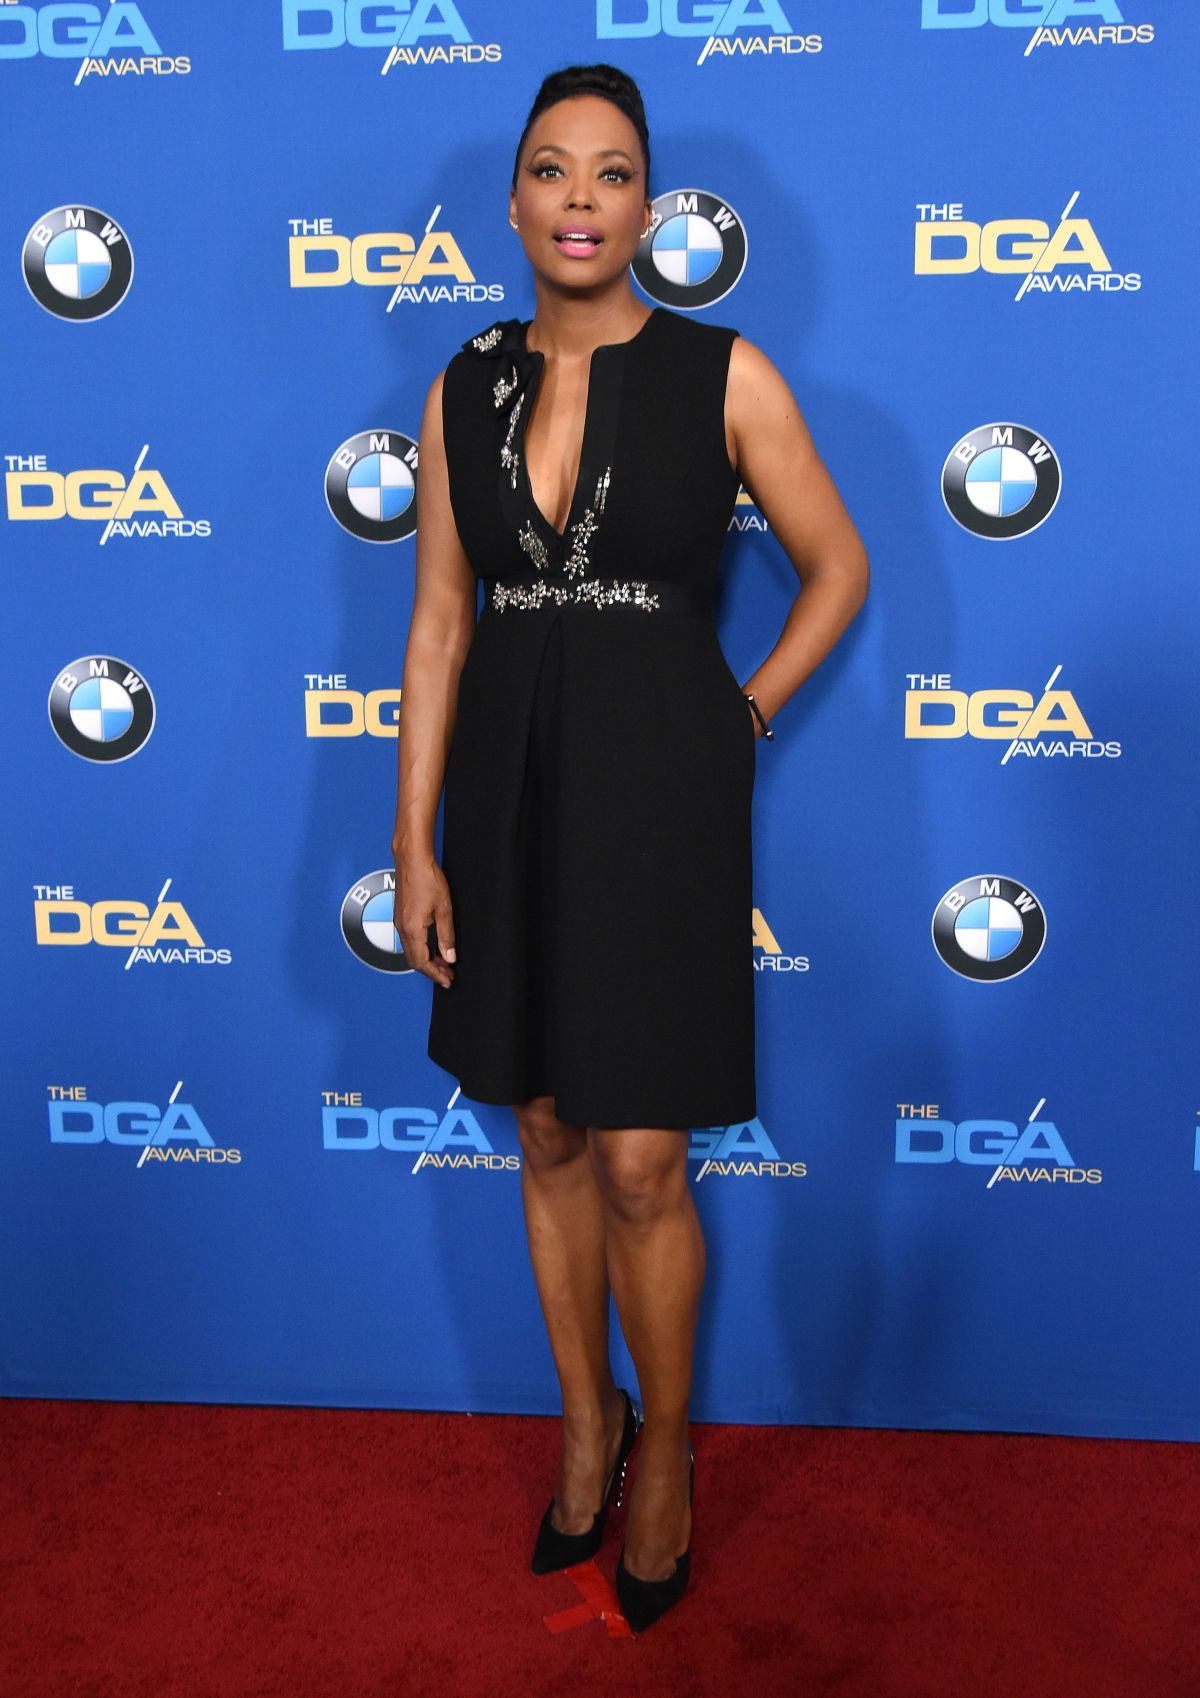 aisha-tyler-at-69th-annual-directors-guild-of-america-awards-in-beverly-hills-02-04-2017_2.jpg